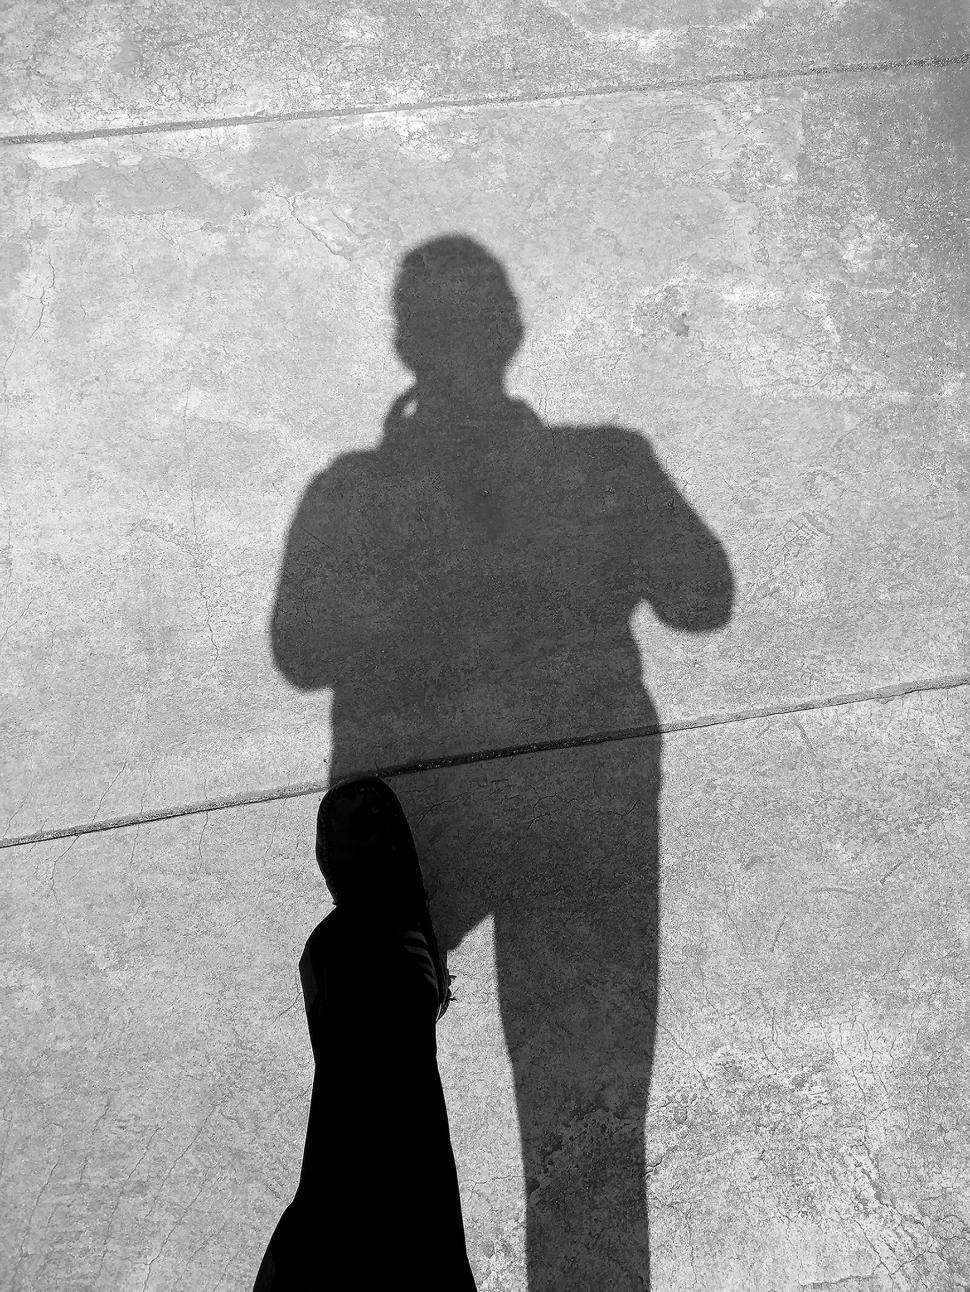 Download Free Stock Photo of Shadow of a man